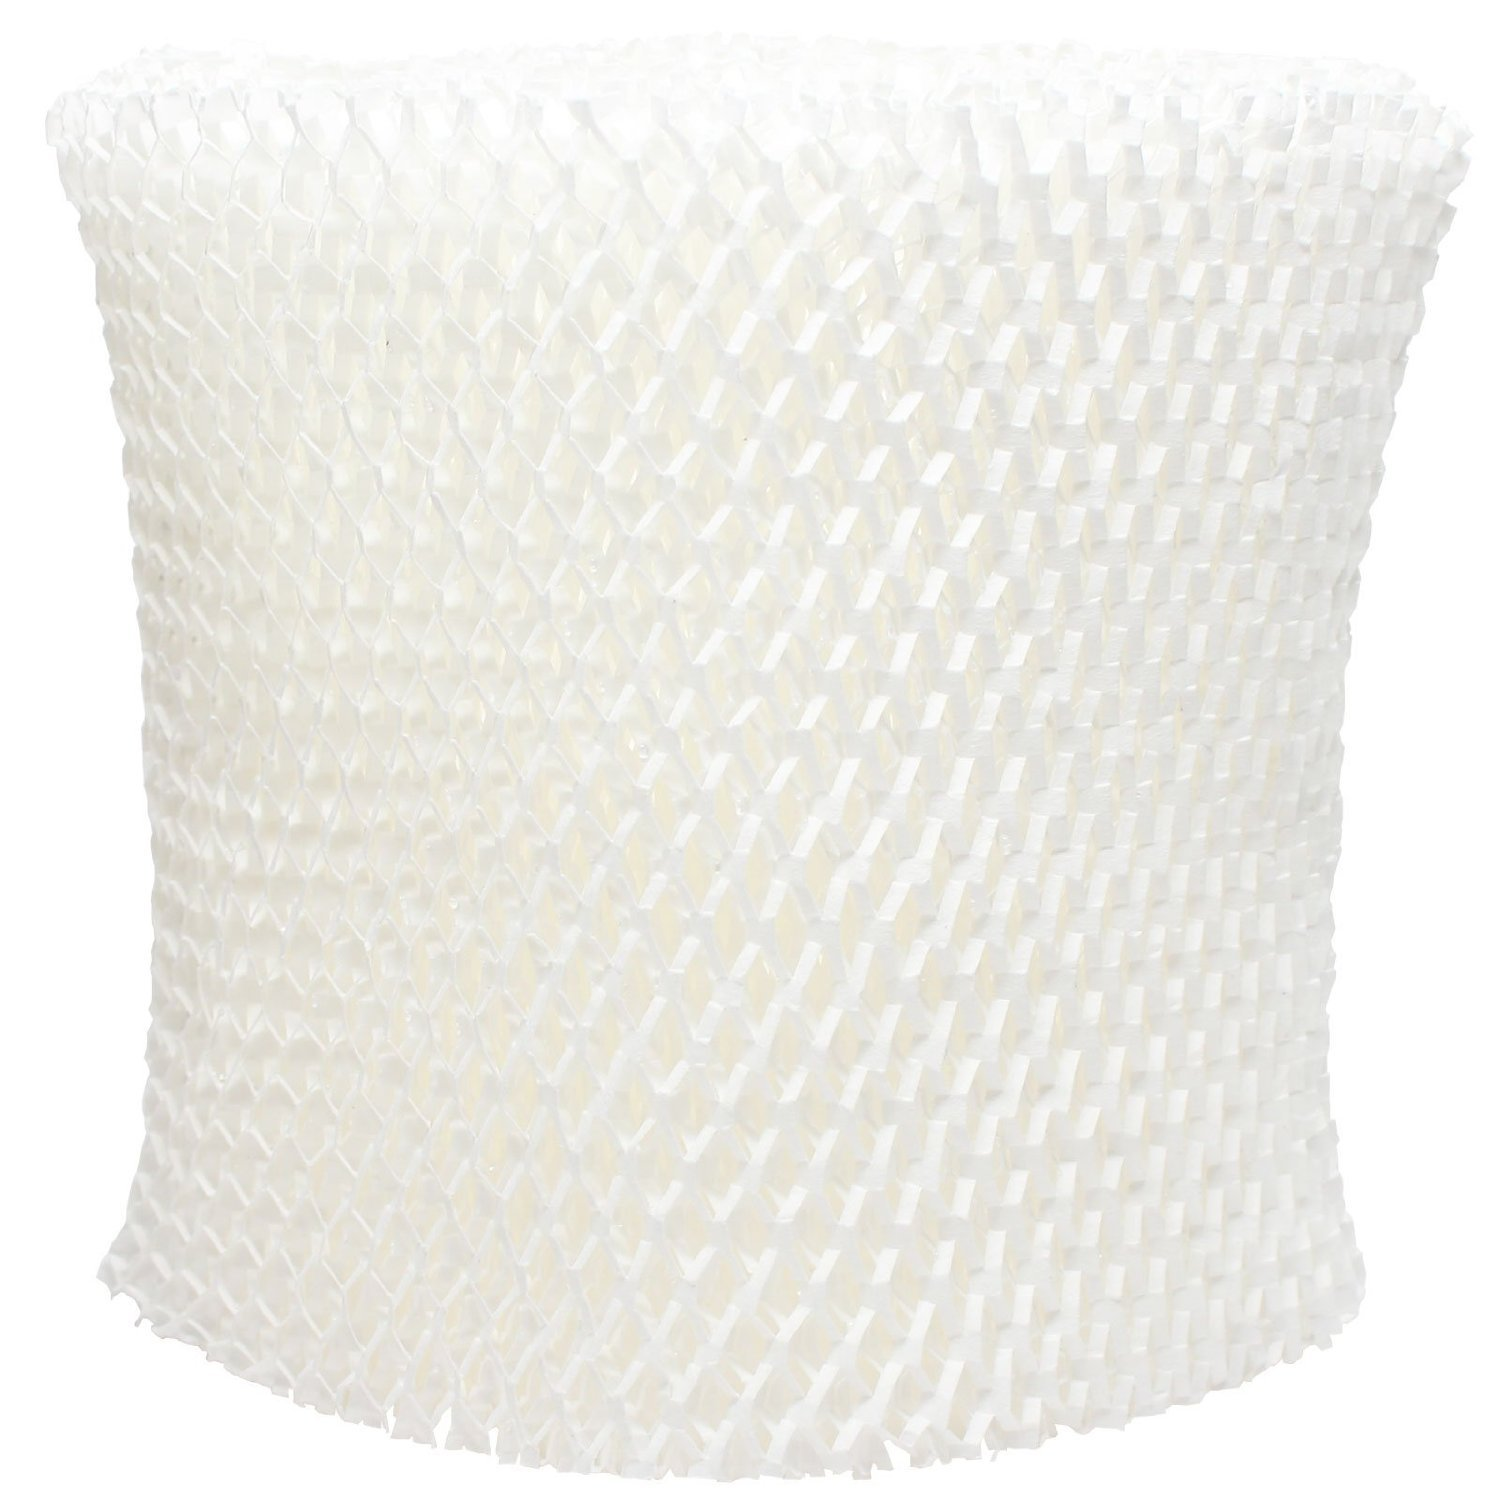 Holmes HWF65 Humidifier Filter (Aftermarket)